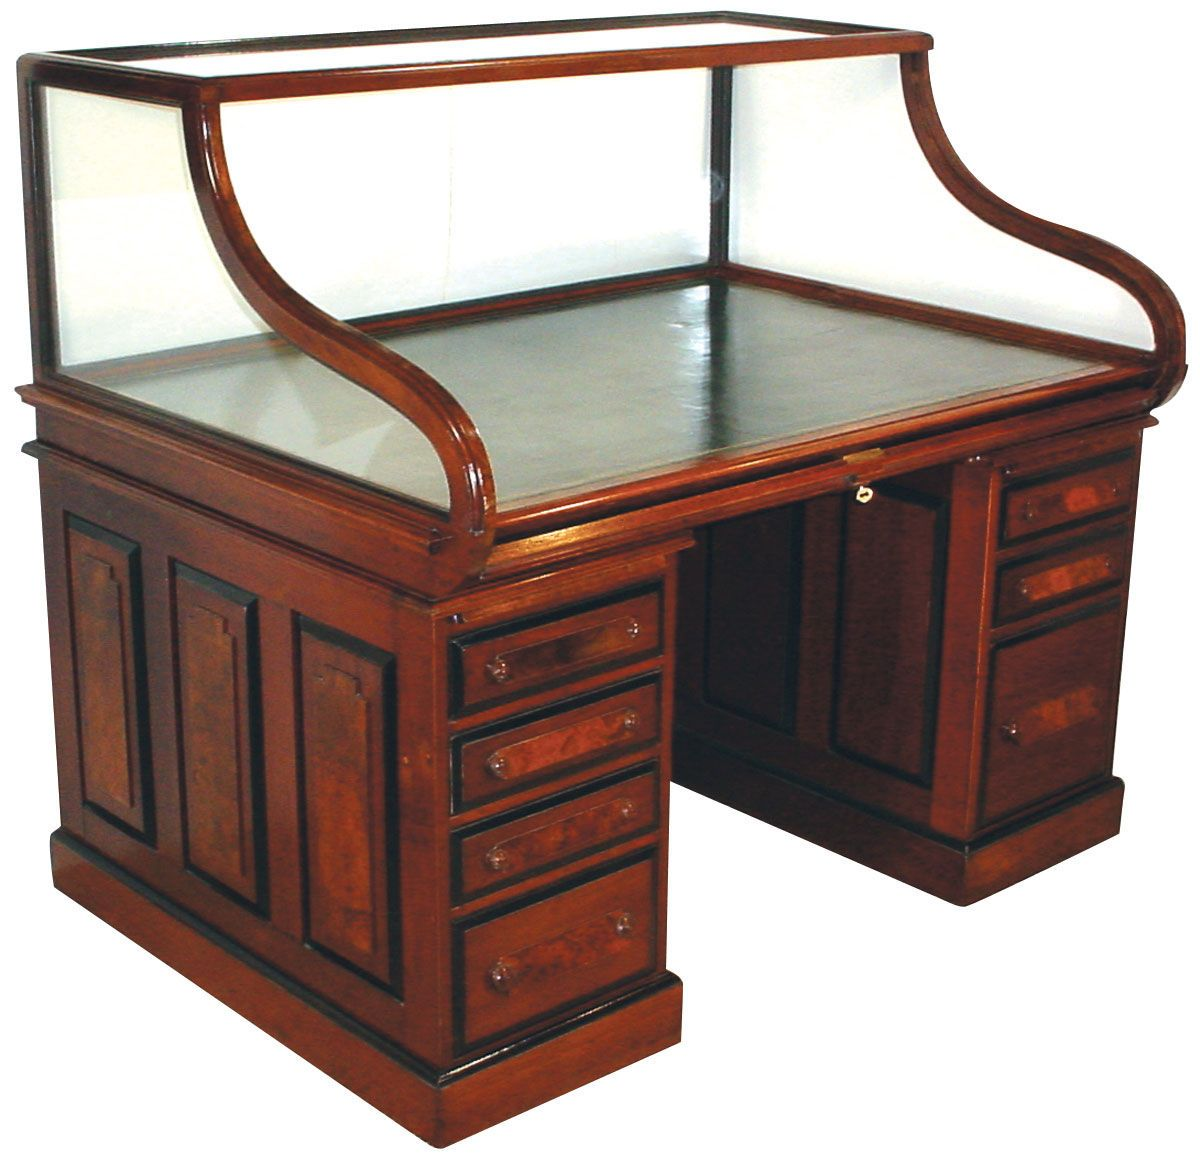 RARE CUTLER & SON GLASS TOPPED DESK 2898 - Rare Cutler & Son Glass Topped Desk 2898 Glass Top Desk, Desks And